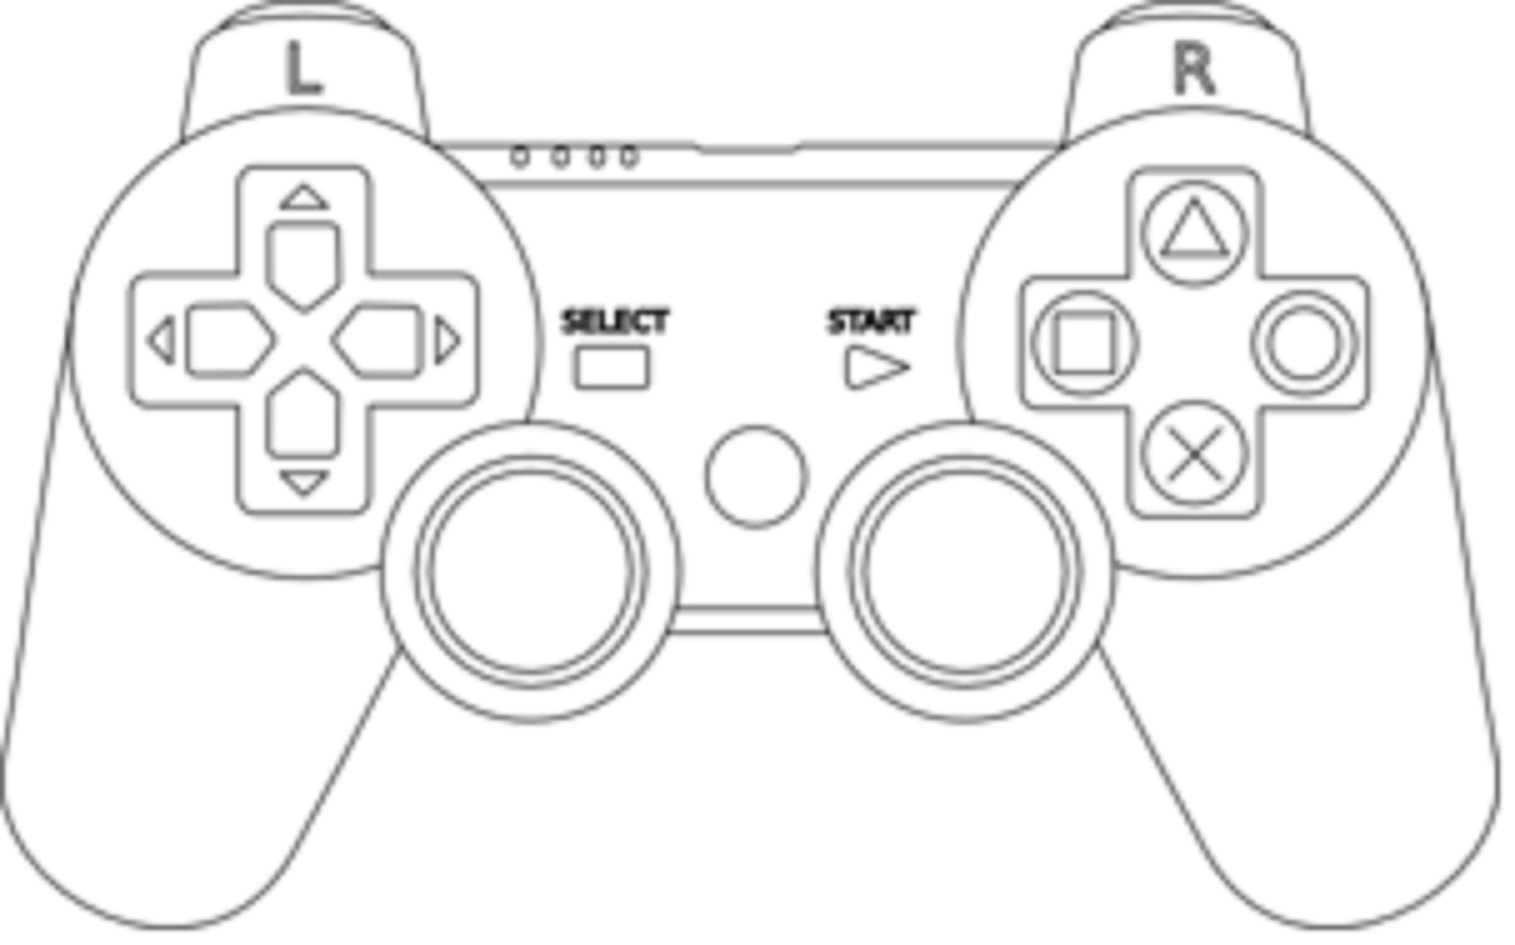 Game Controller Free Images At Clkercom Vector Clip Art Online - Video game outline